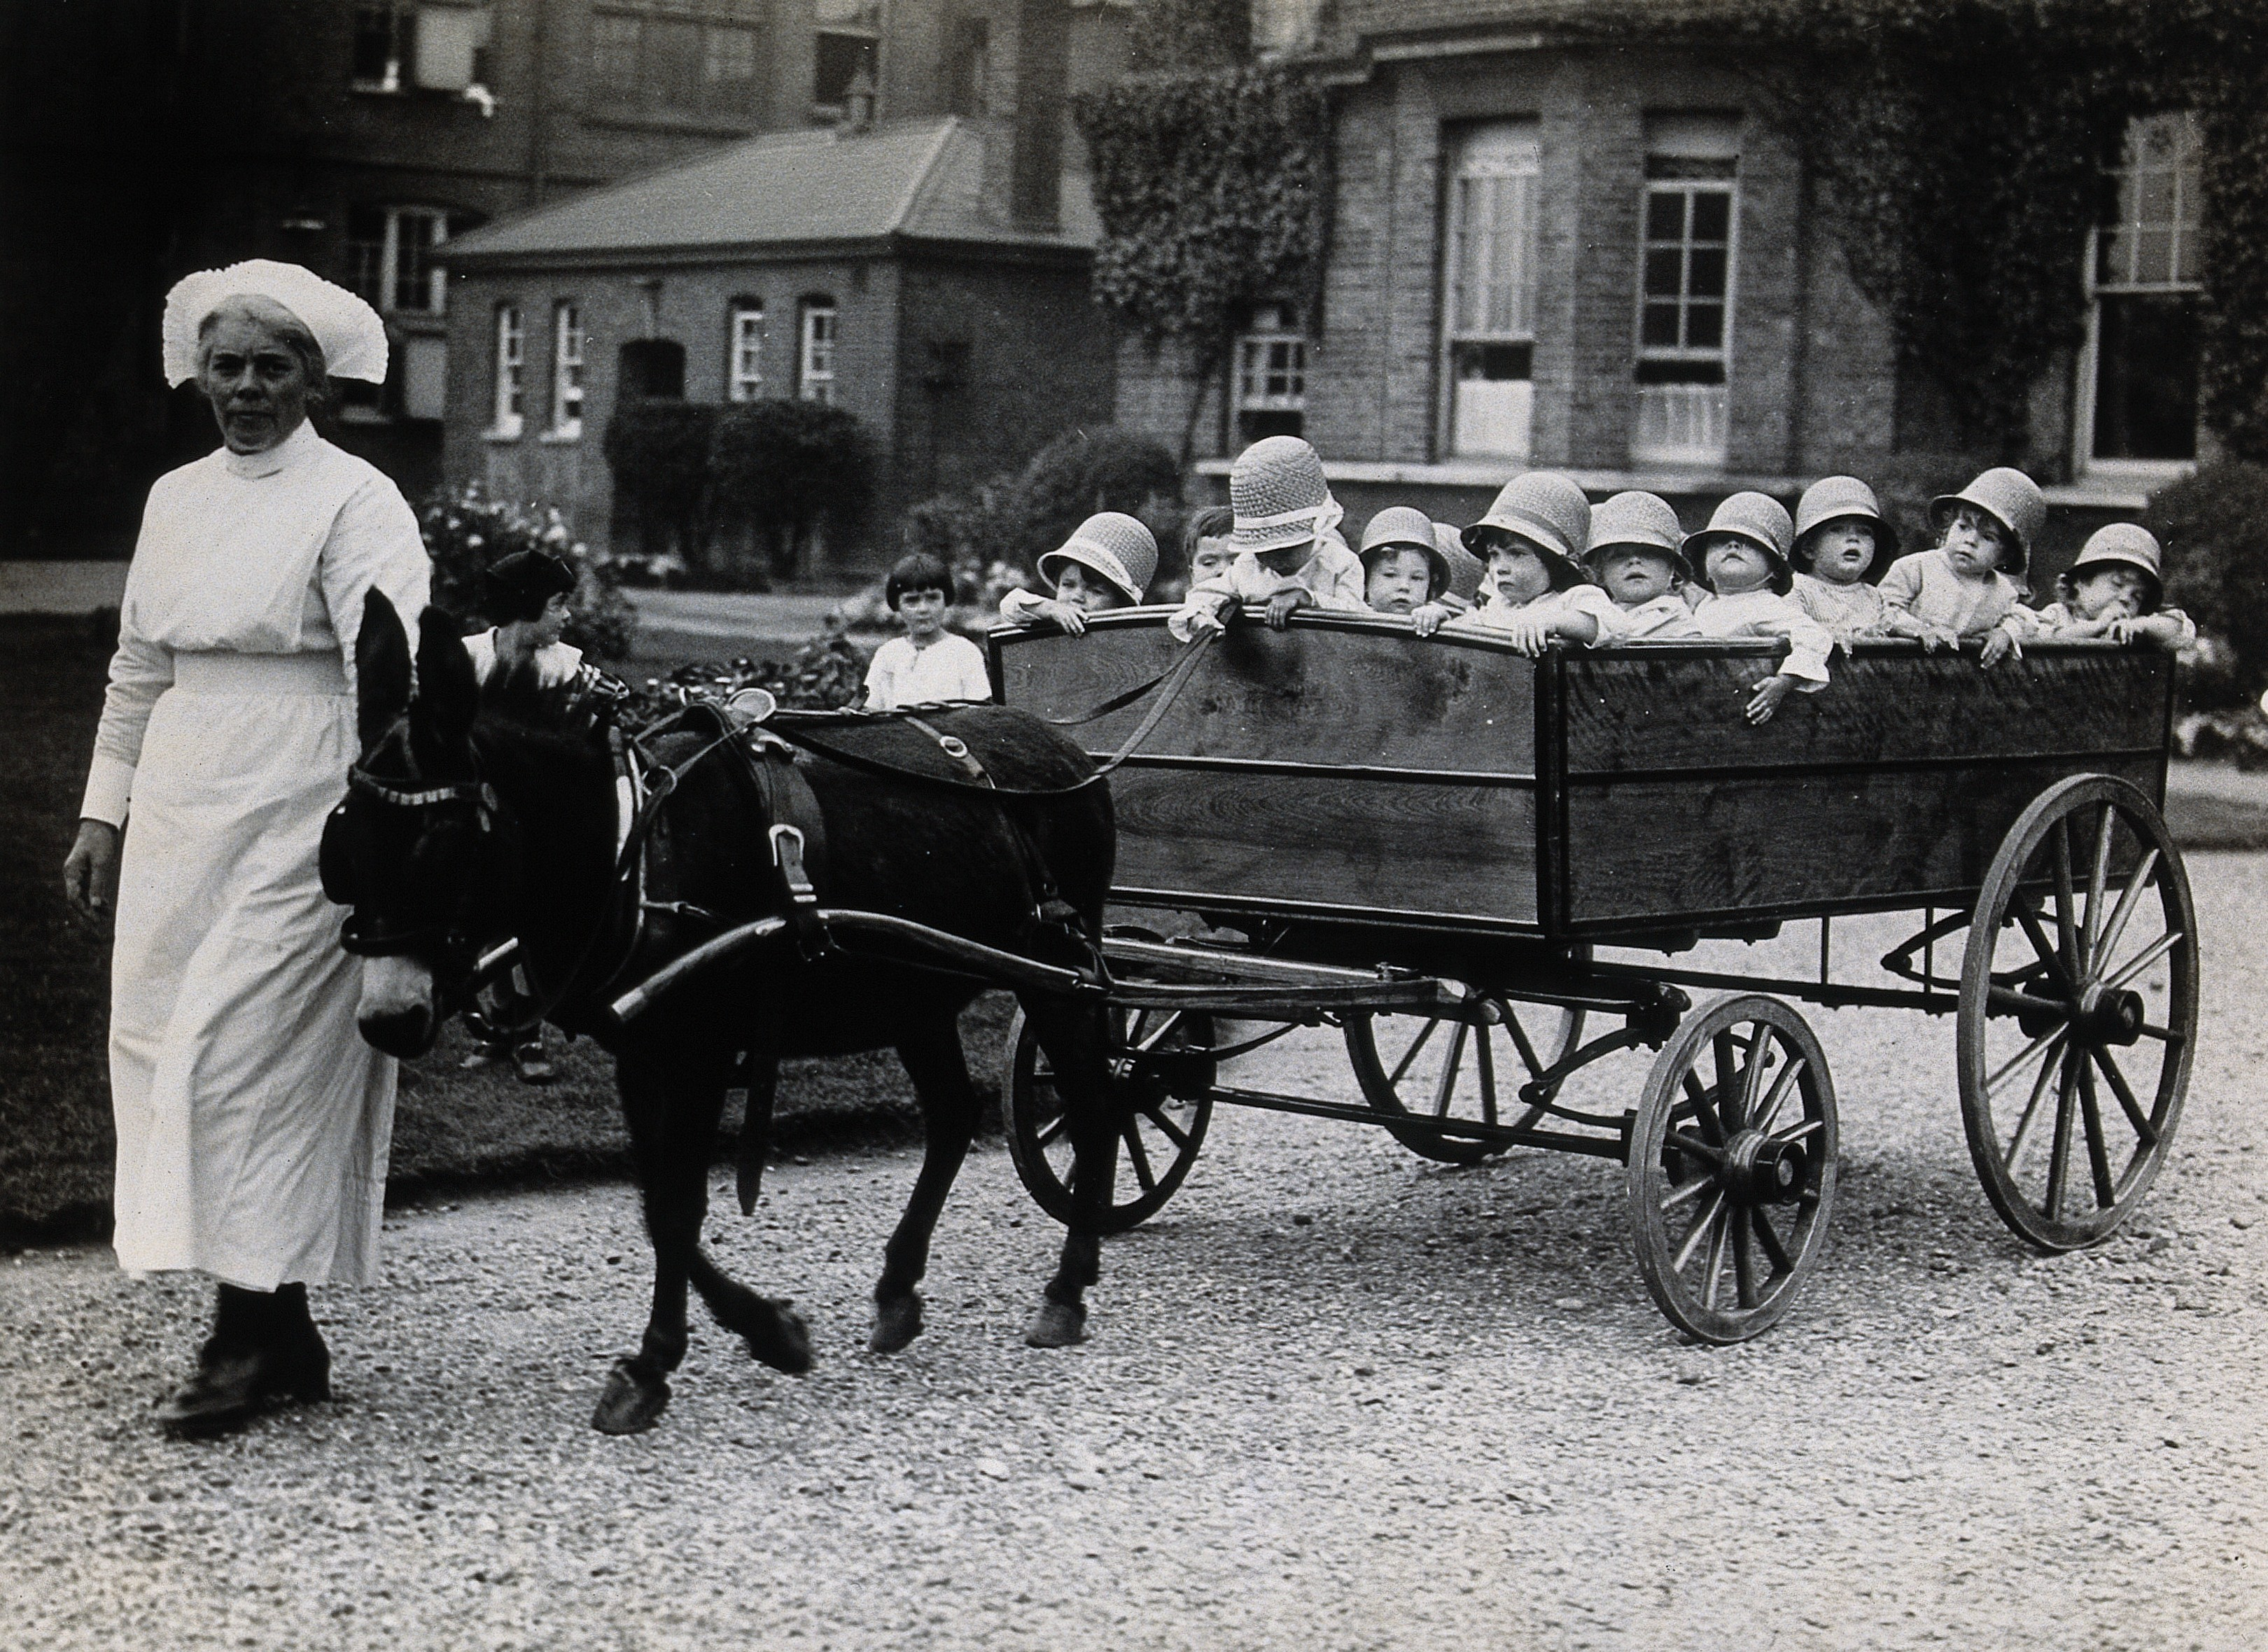 File:The 18-seater pram, Park Royal Hospital, London, 1925 Wellcome